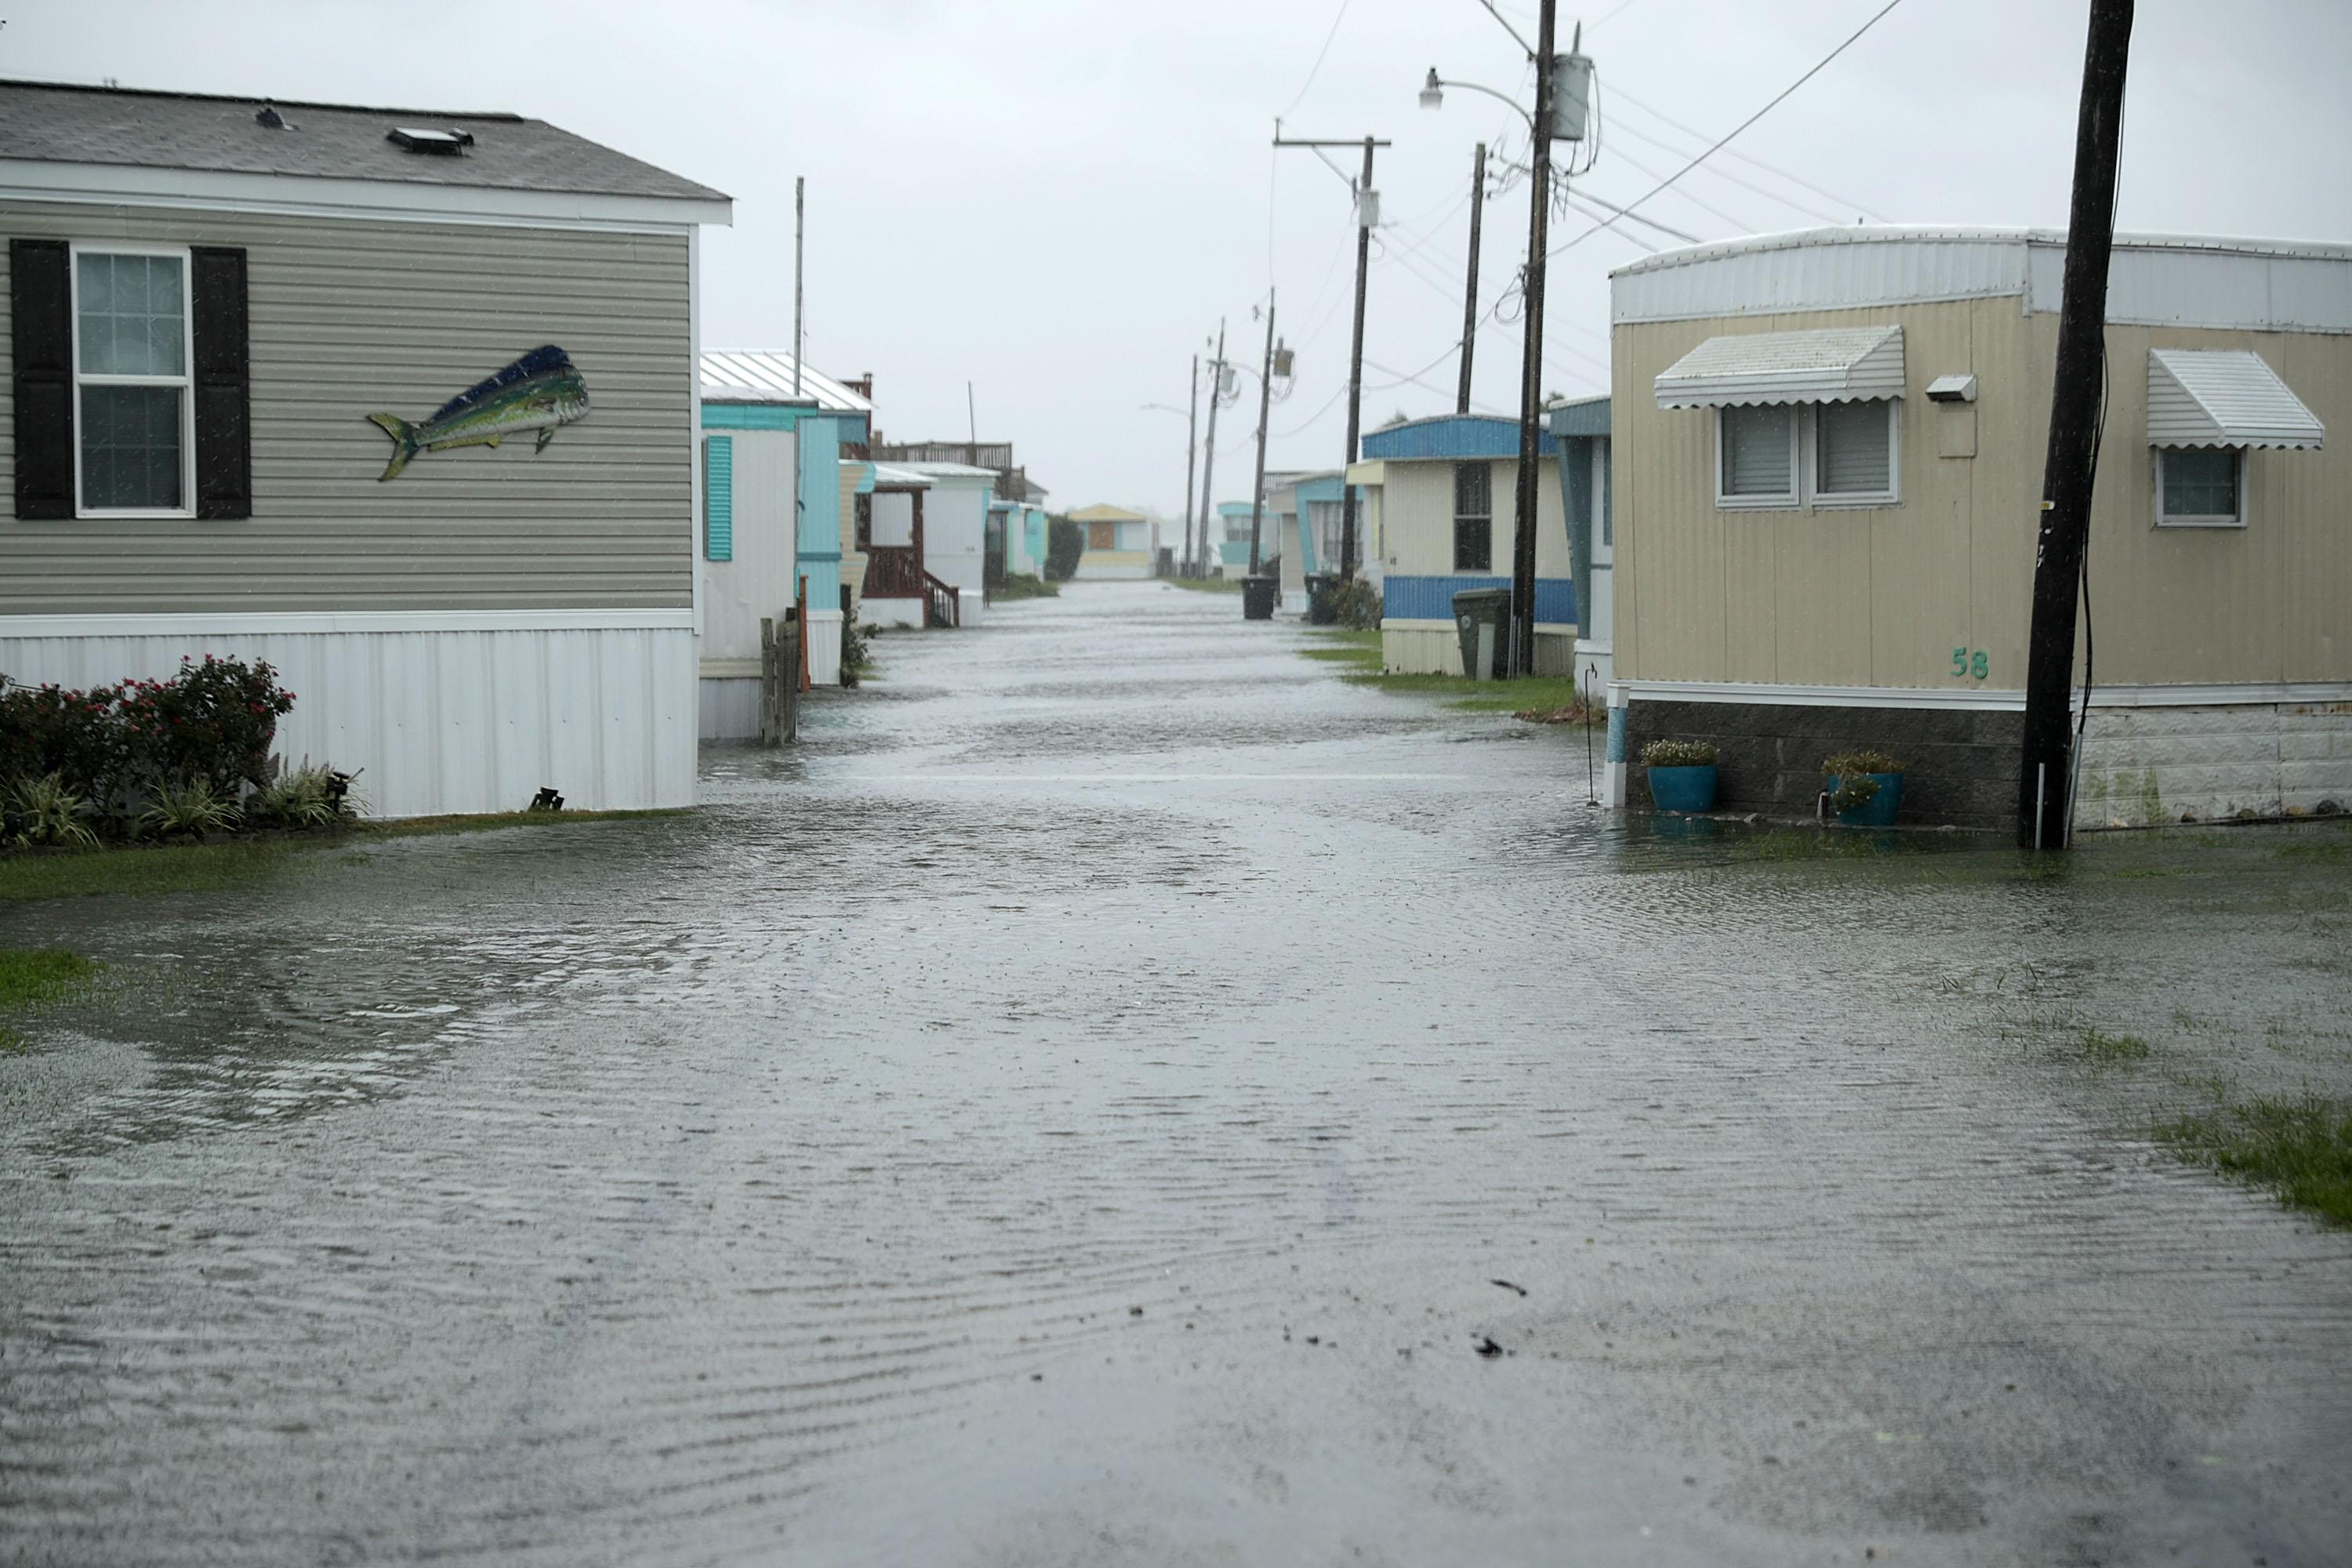 Flash flooding covers the road in low-lying areas in Atlantic Beach, N.C., as the outer edges of Hurricane Florence begin to affect the coast on Thursday.